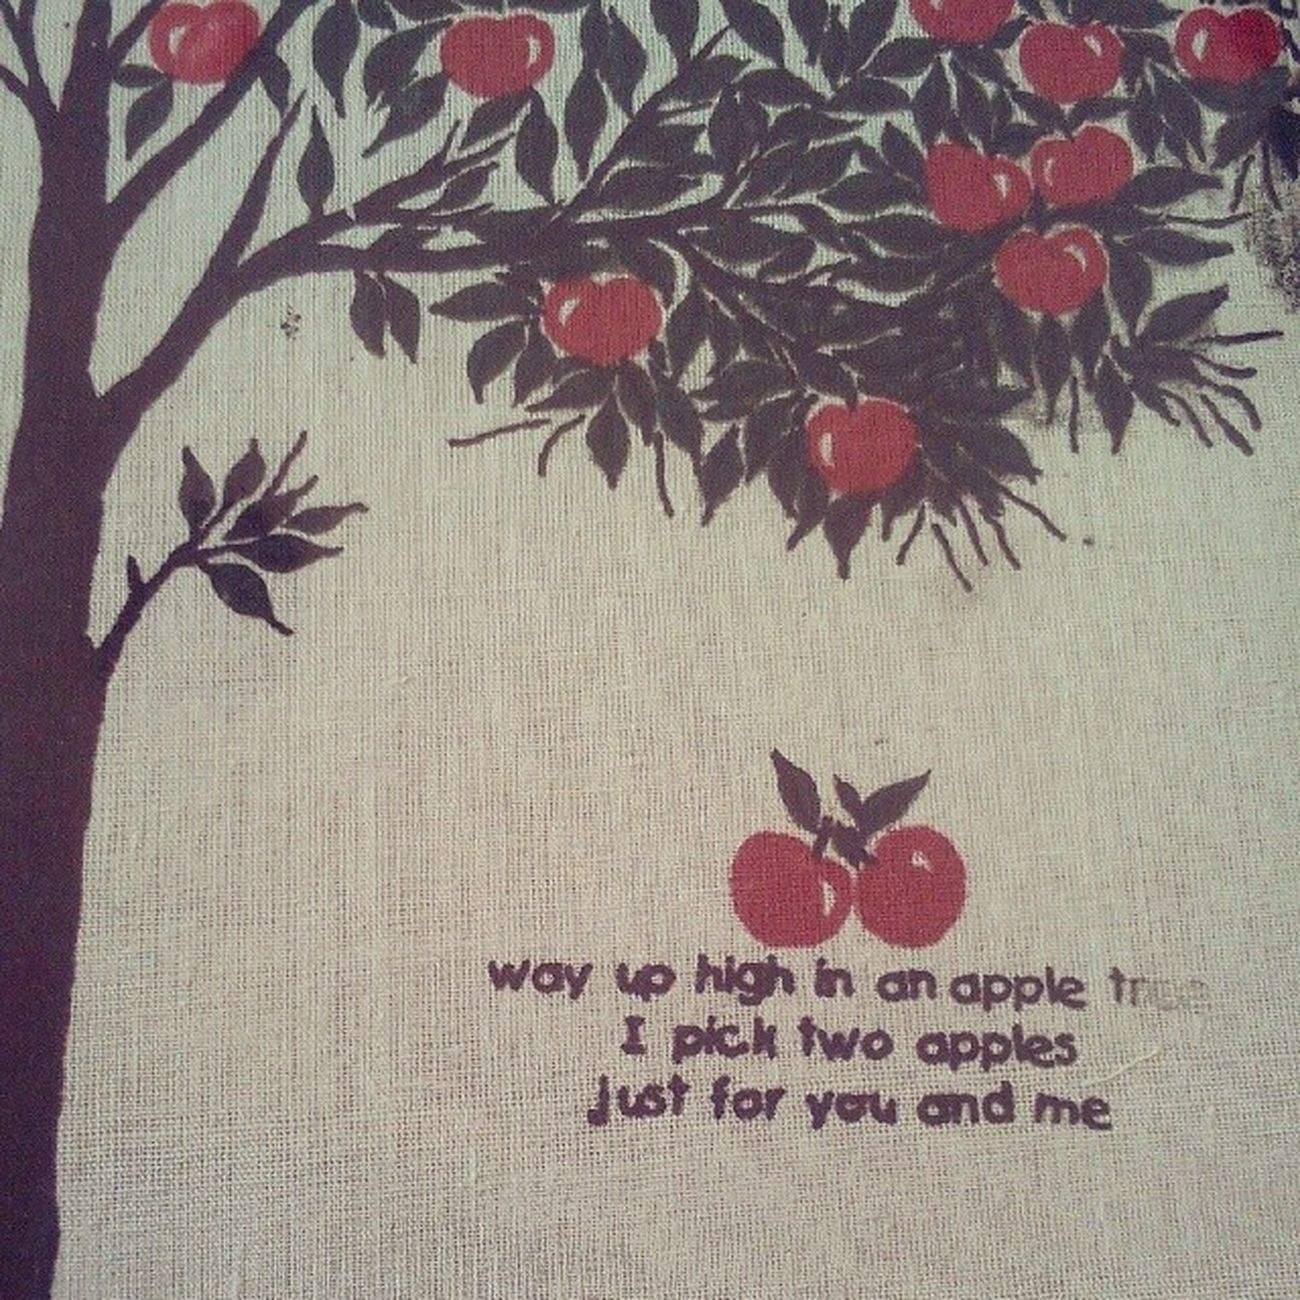 just for you and me Apple Pie Applepie Love tree